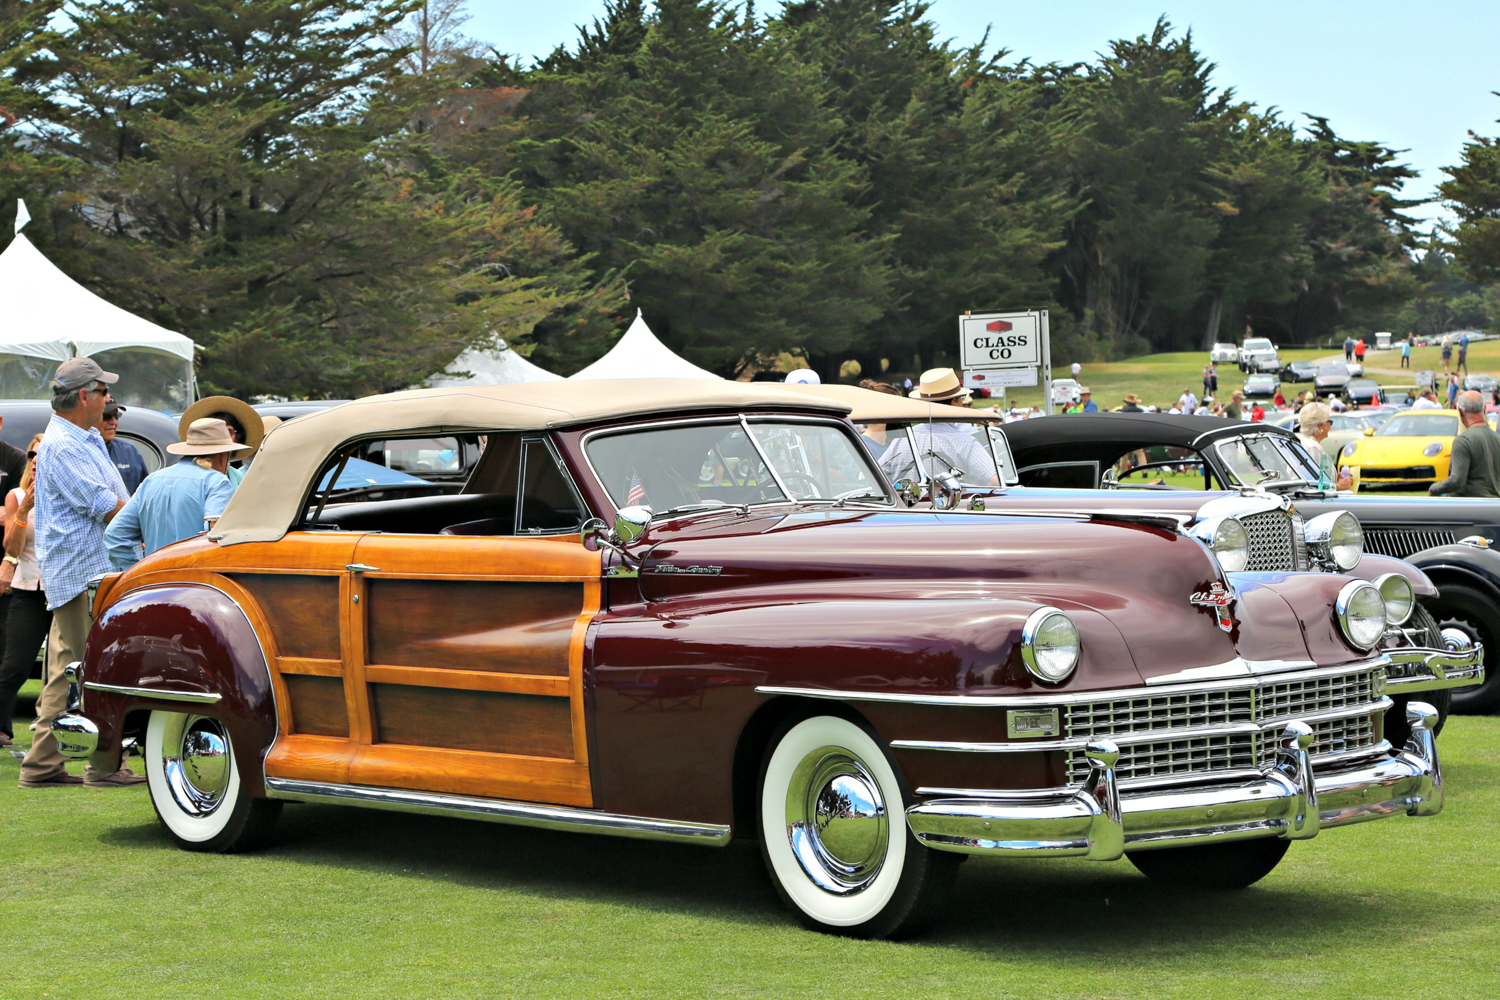 1946 Chrysler Town & Country. Donald Barnes